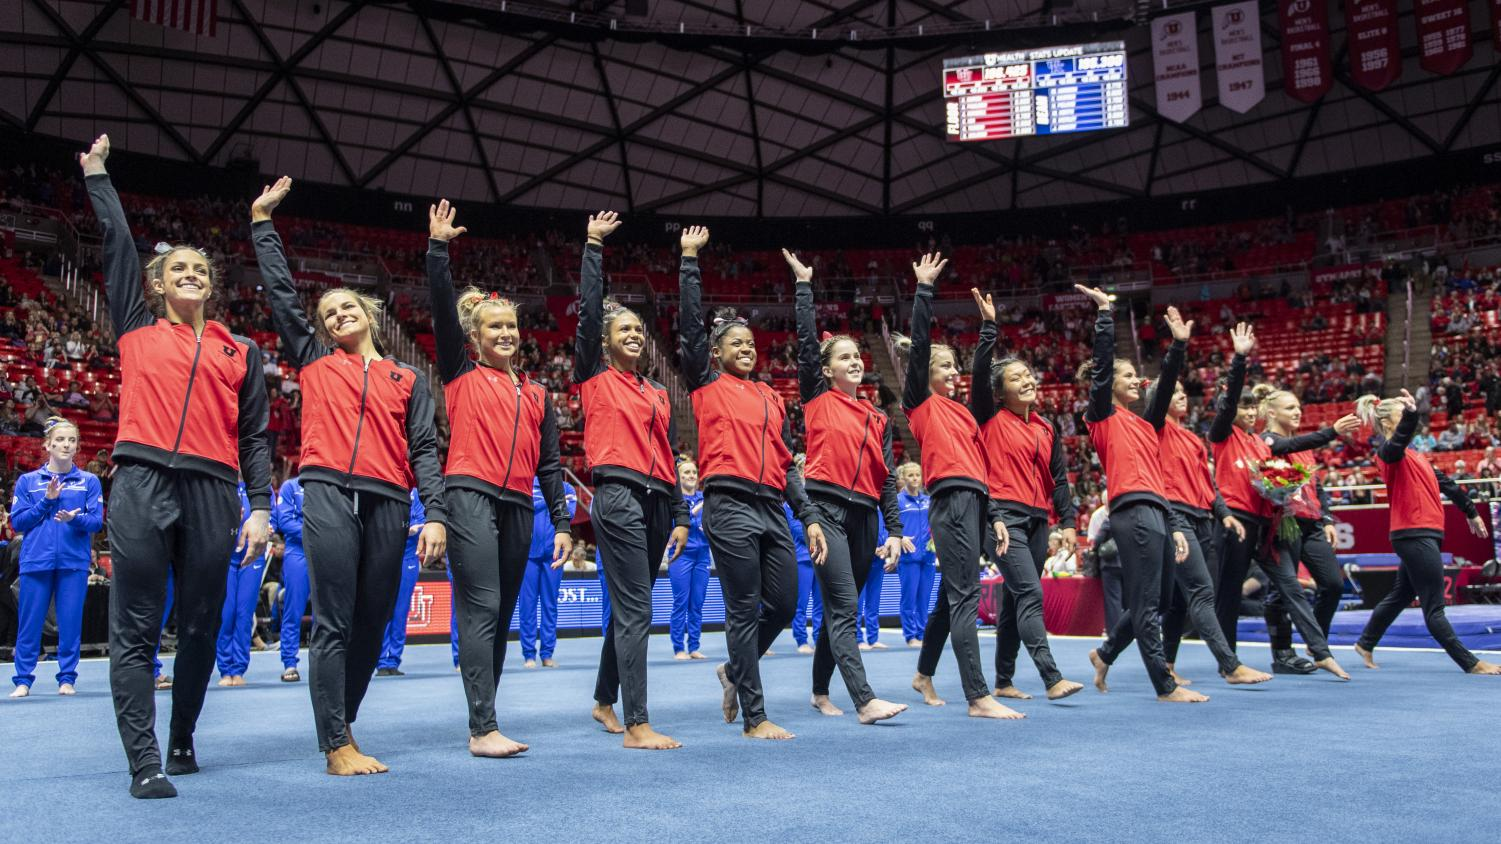 The University of Utah Red Rocks thank the fans following a dual meet vs. The University of Kentucky at the Jon M. Huntsman Center in Salt Lake City, Utah on Friday, Jan. 3, 2020. (Photo by Kiffer Creveling | The Daily Utah Chronicle)